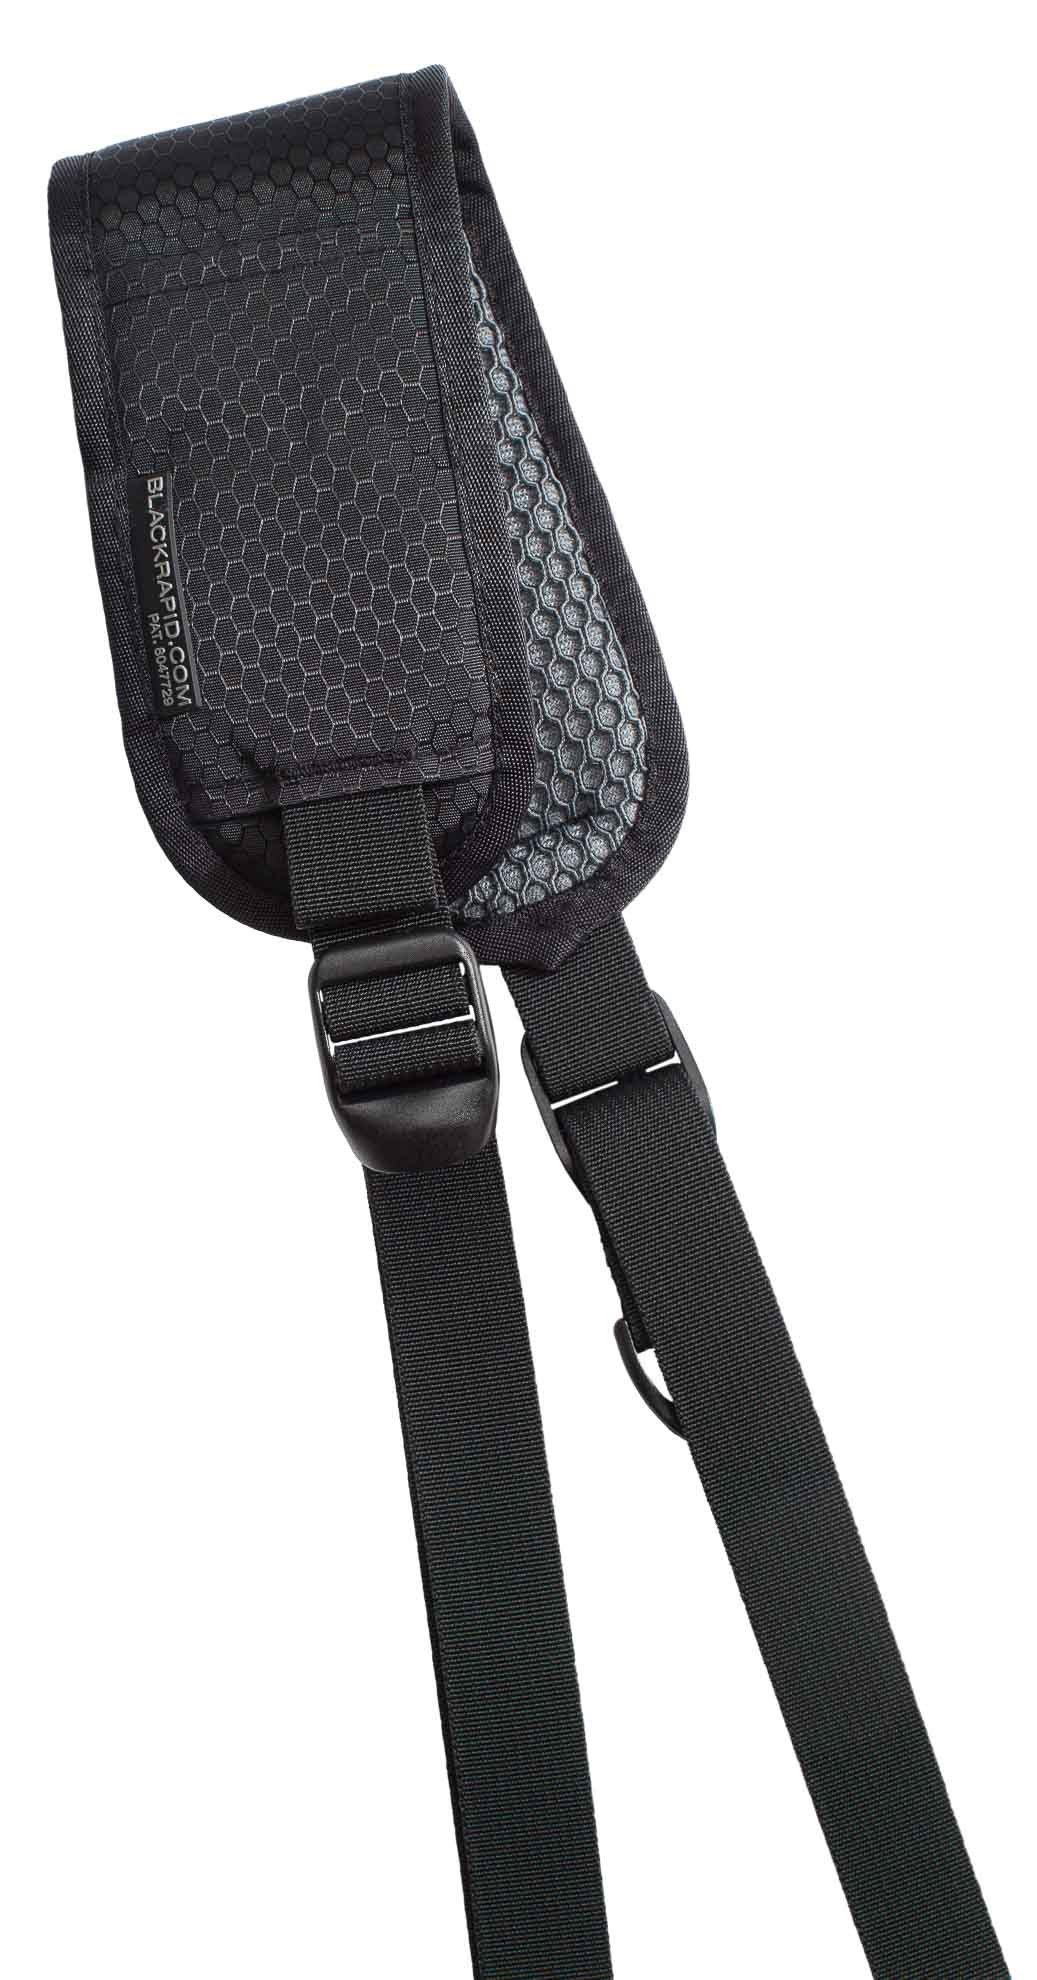 BLACKRAPID Classic Retro (RS4) Camera Strap, 1pc of Safety Tether Included - 10th Anniversary Edition by BlackRapid (Image #3)